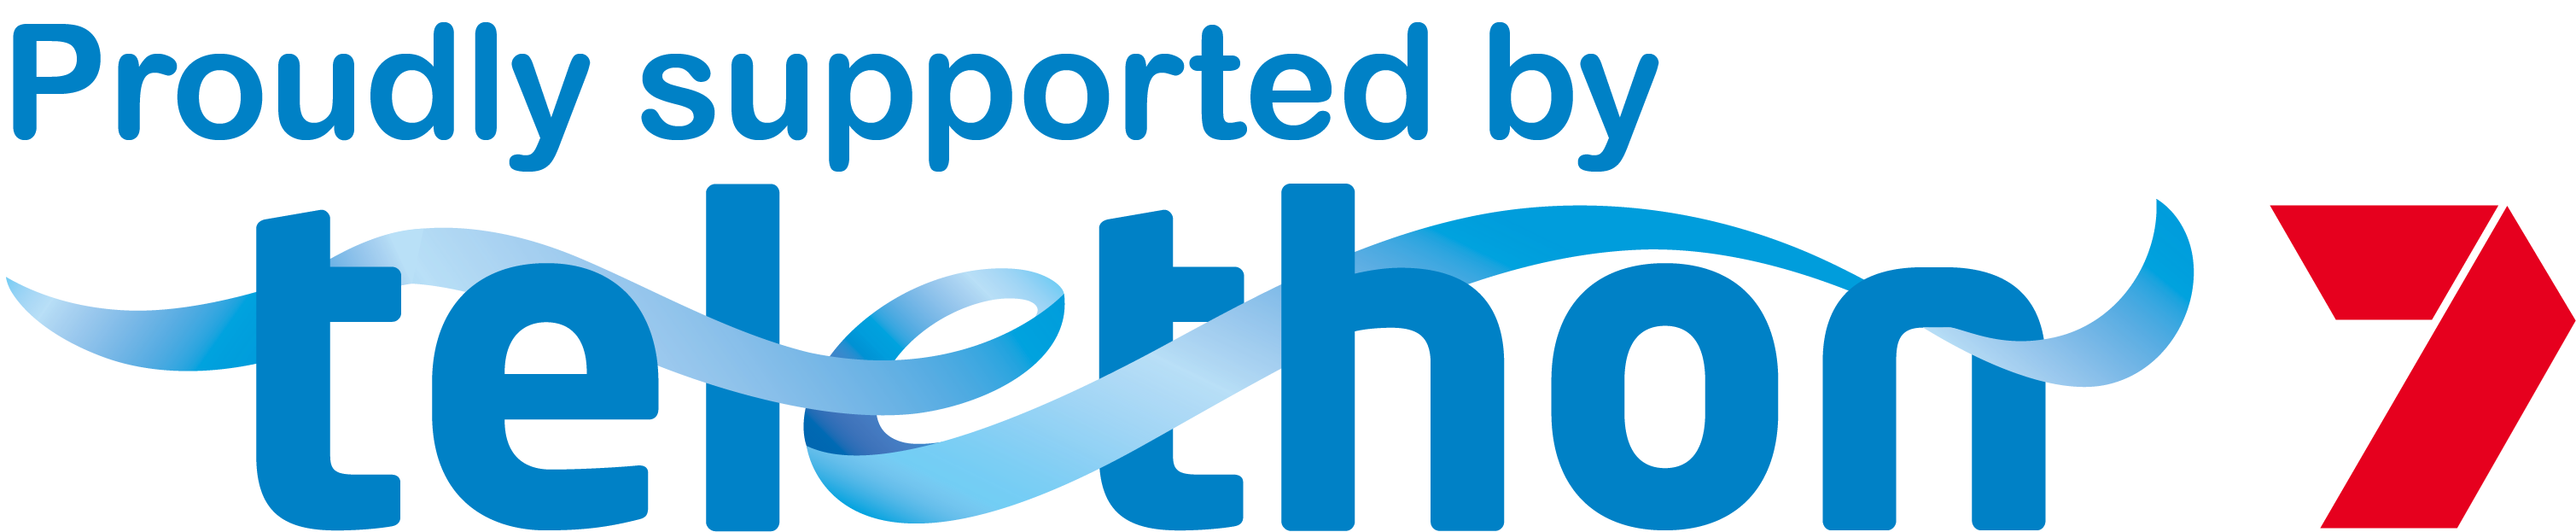 Telethon Channel 7 logo